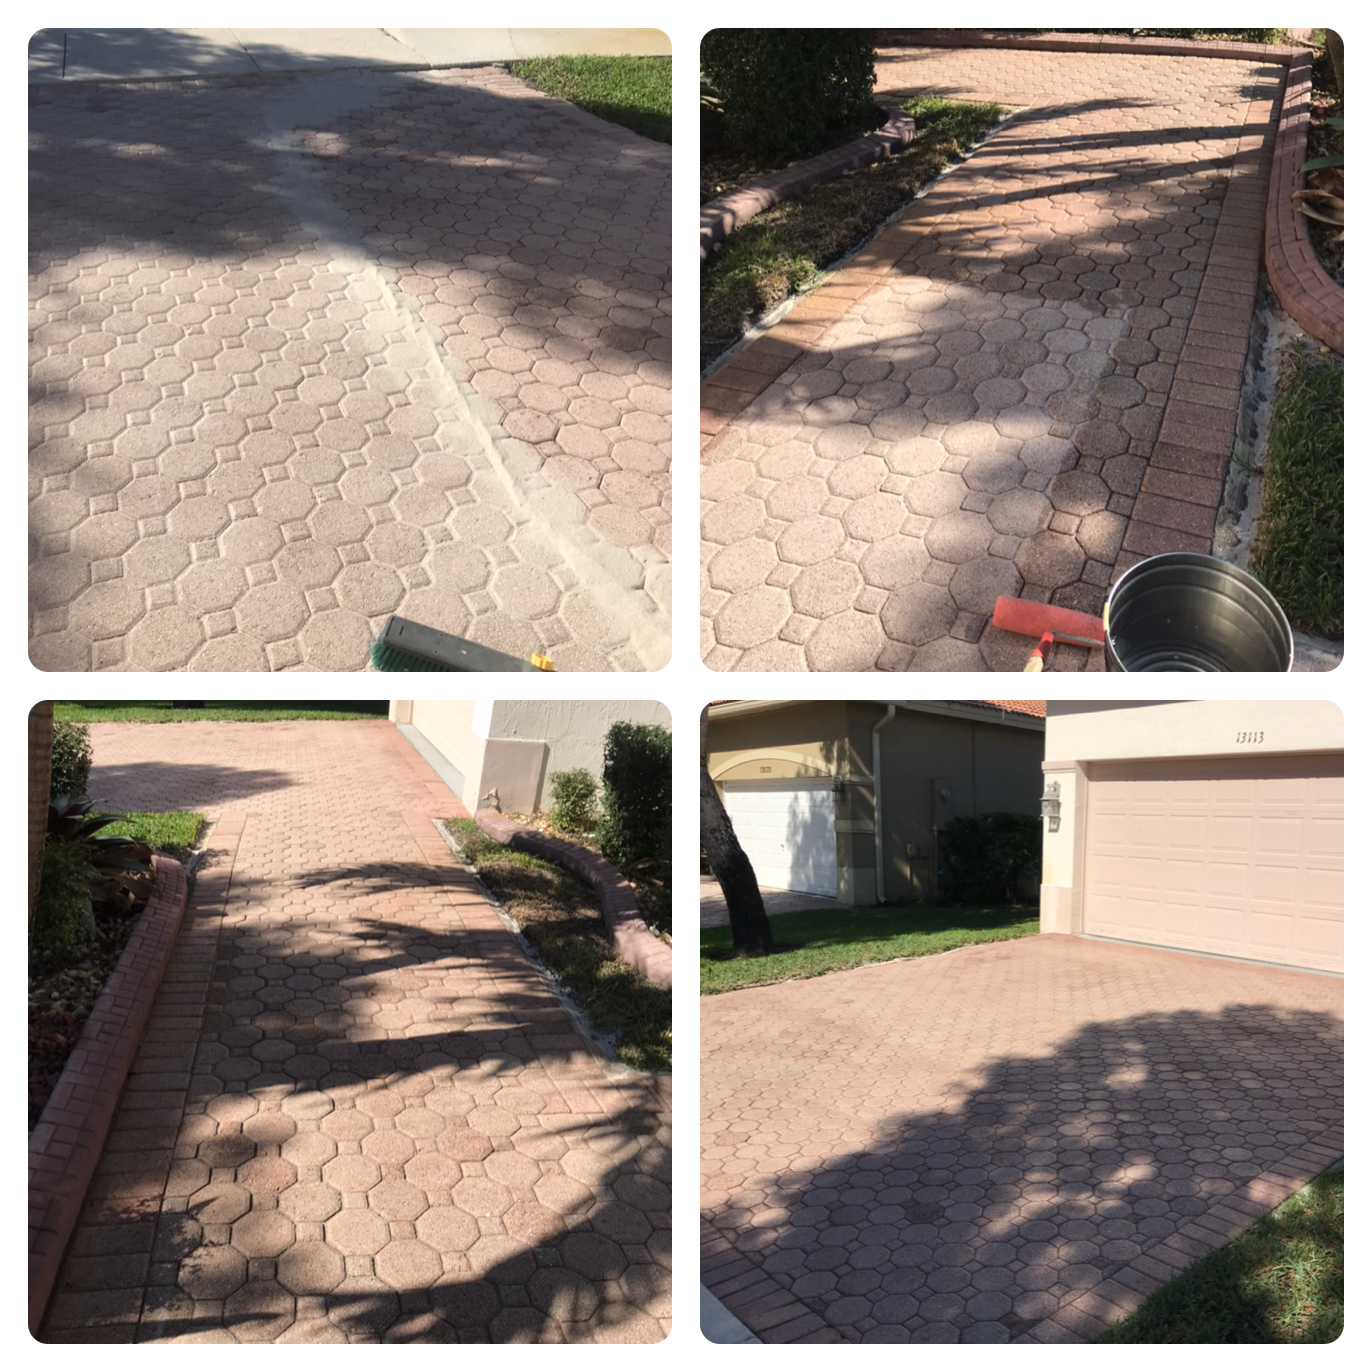 Driveway pressure cleaning and sealing